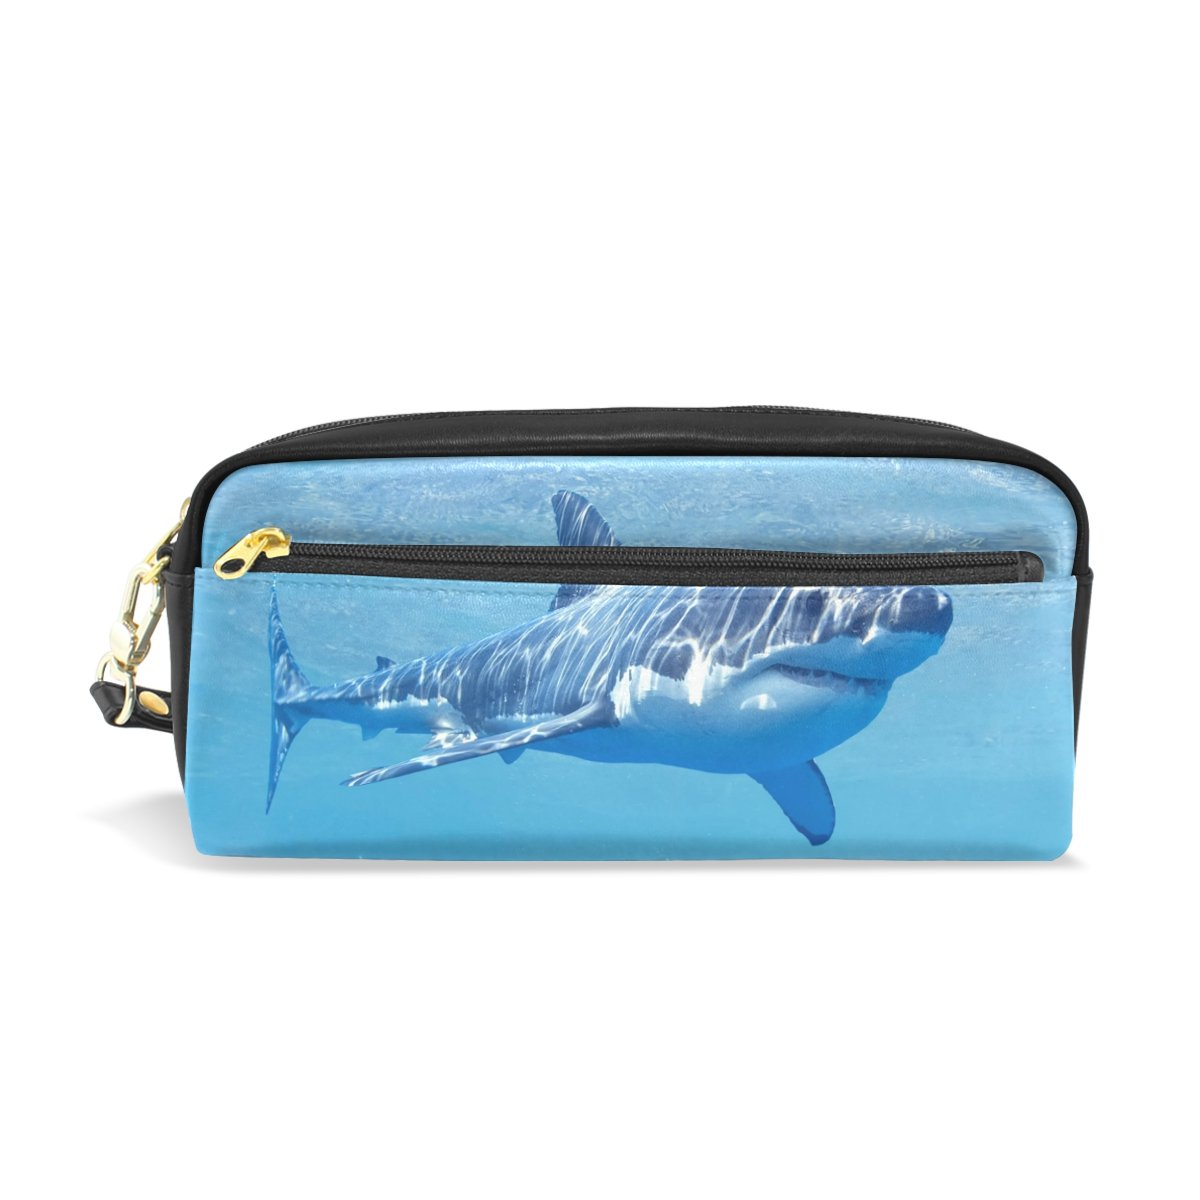 MRMIAN PU Leather Ocean Sea Animal Shark Pen Pencil Case Bag Purse Pouch Cosmetic Bag Zipper for School Boy Girl Office Work